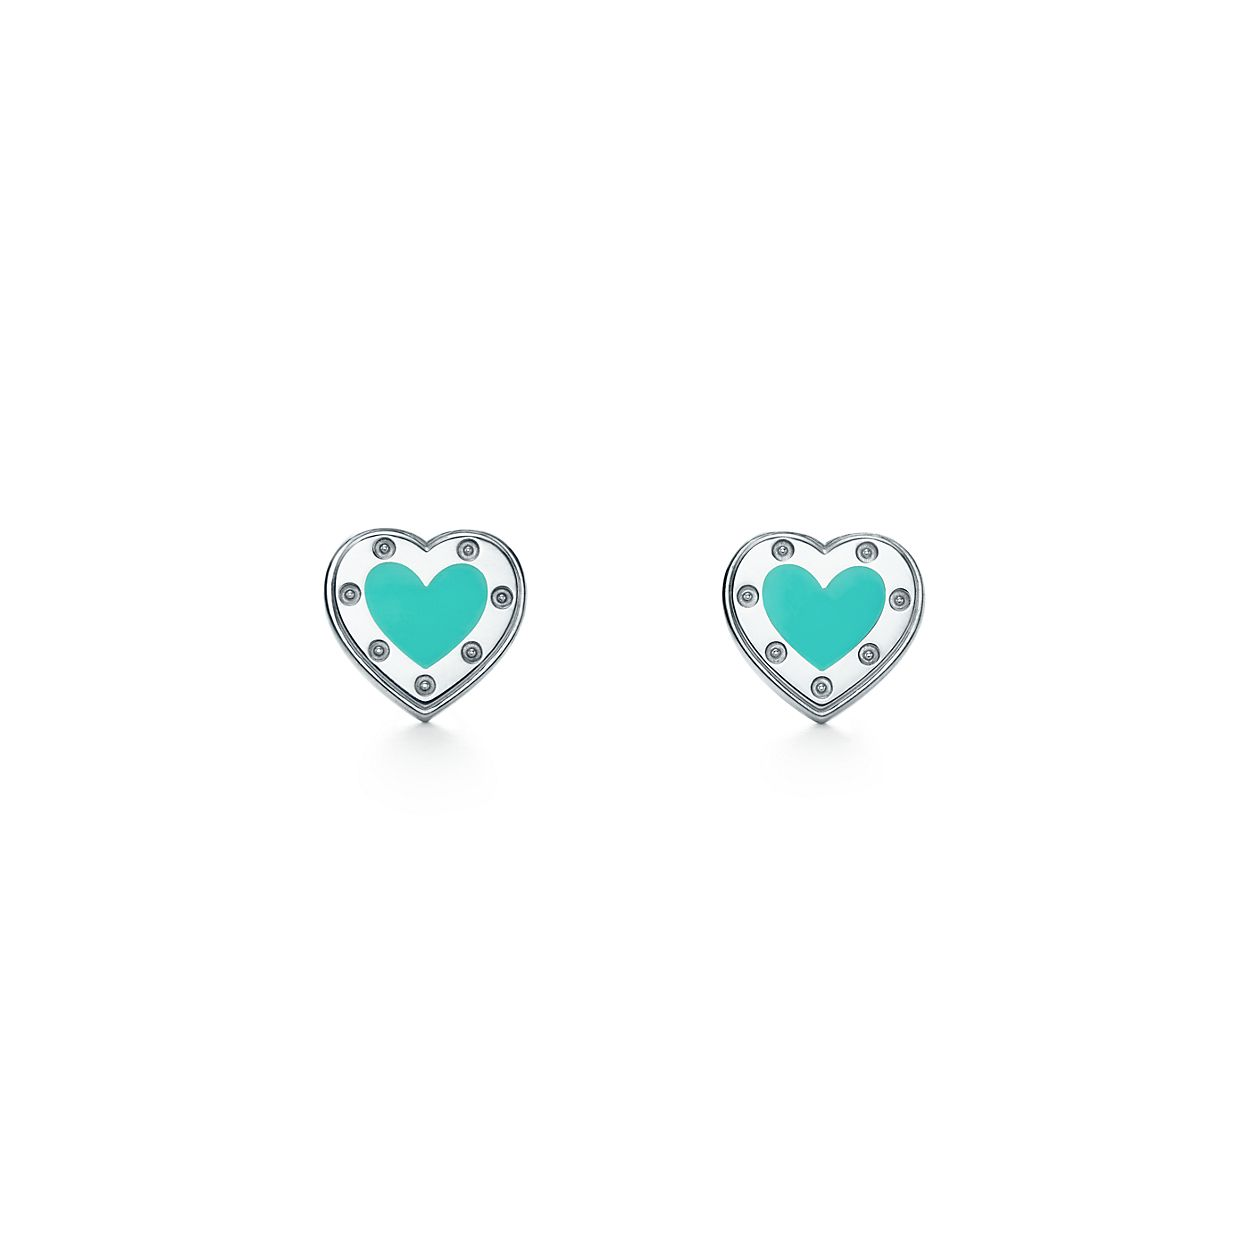 number webstore h product silver d samuel heart earrings